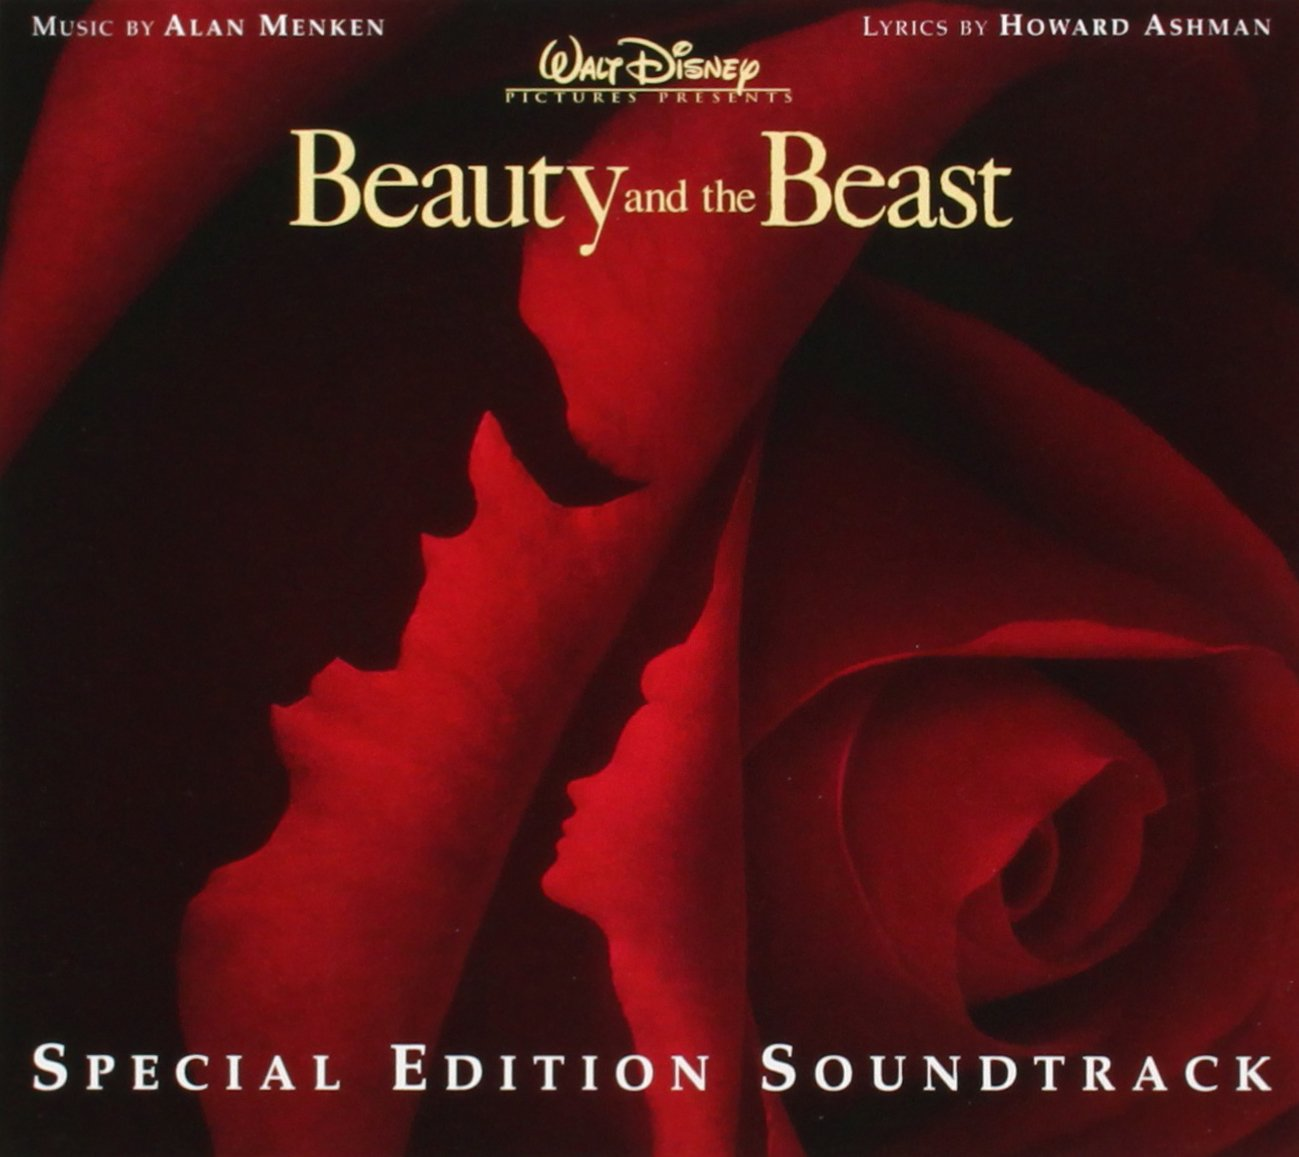 File:Beautybeastspecialeditionostbox.jpg